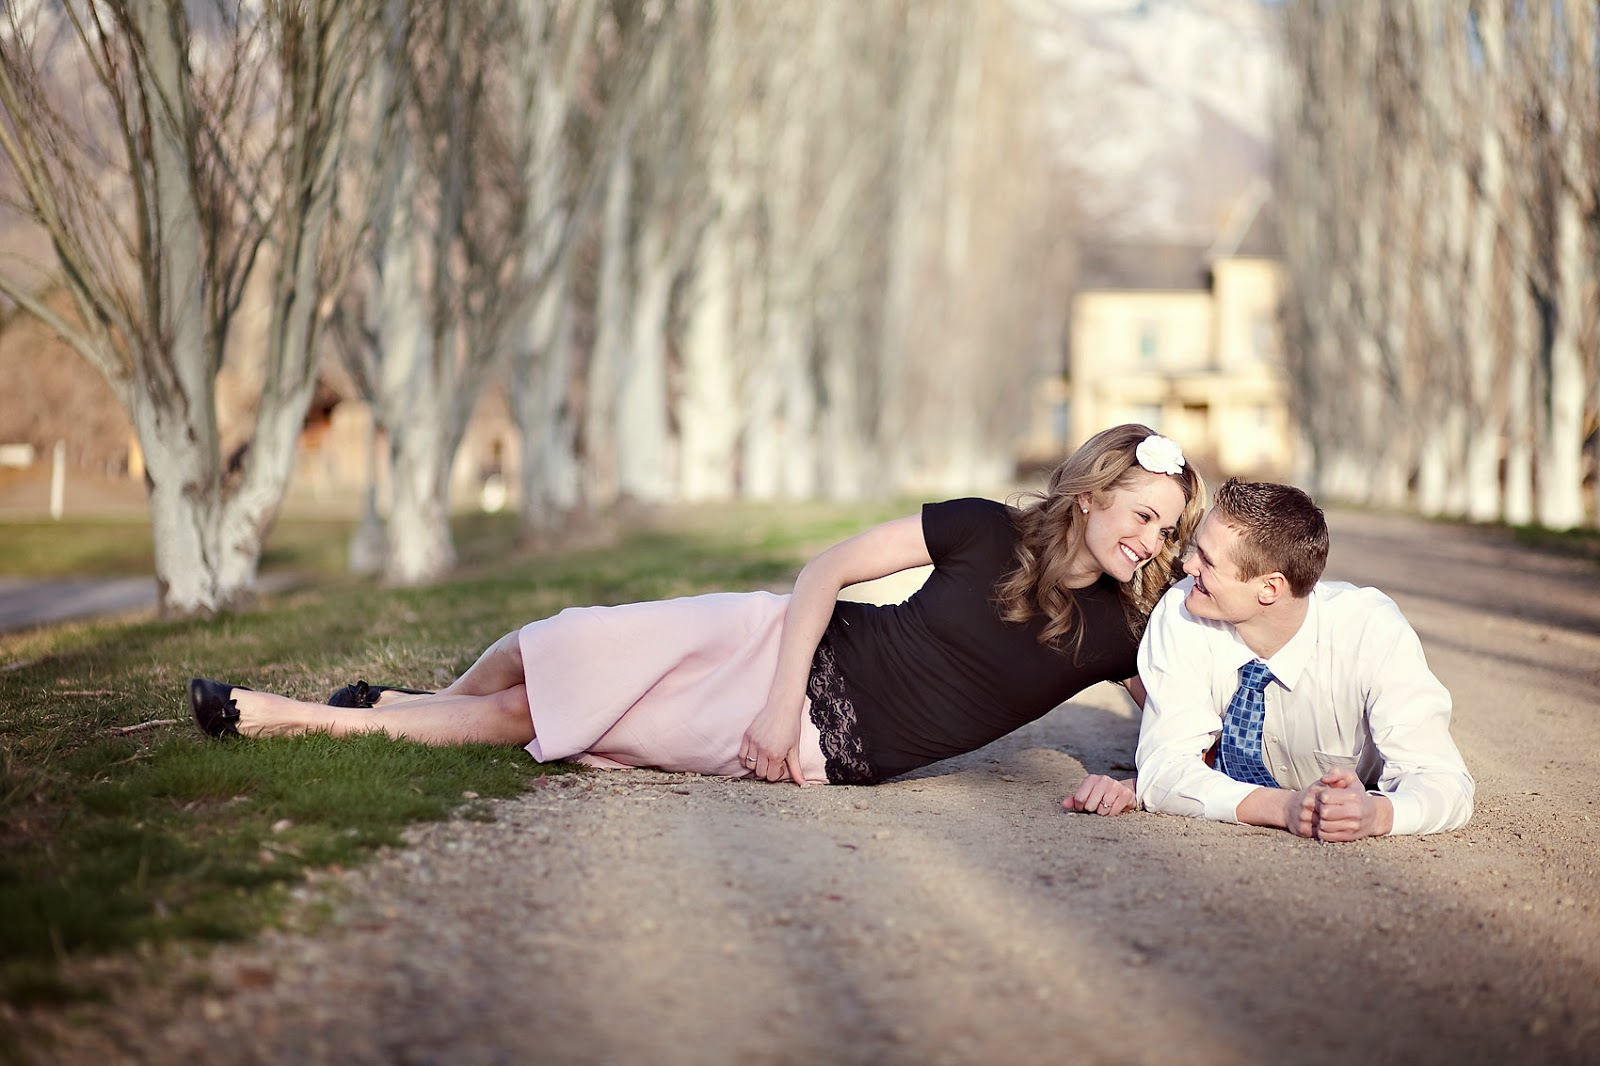 Wallpaper download cute lovers - Free Download Cute Couples Poses Images 1